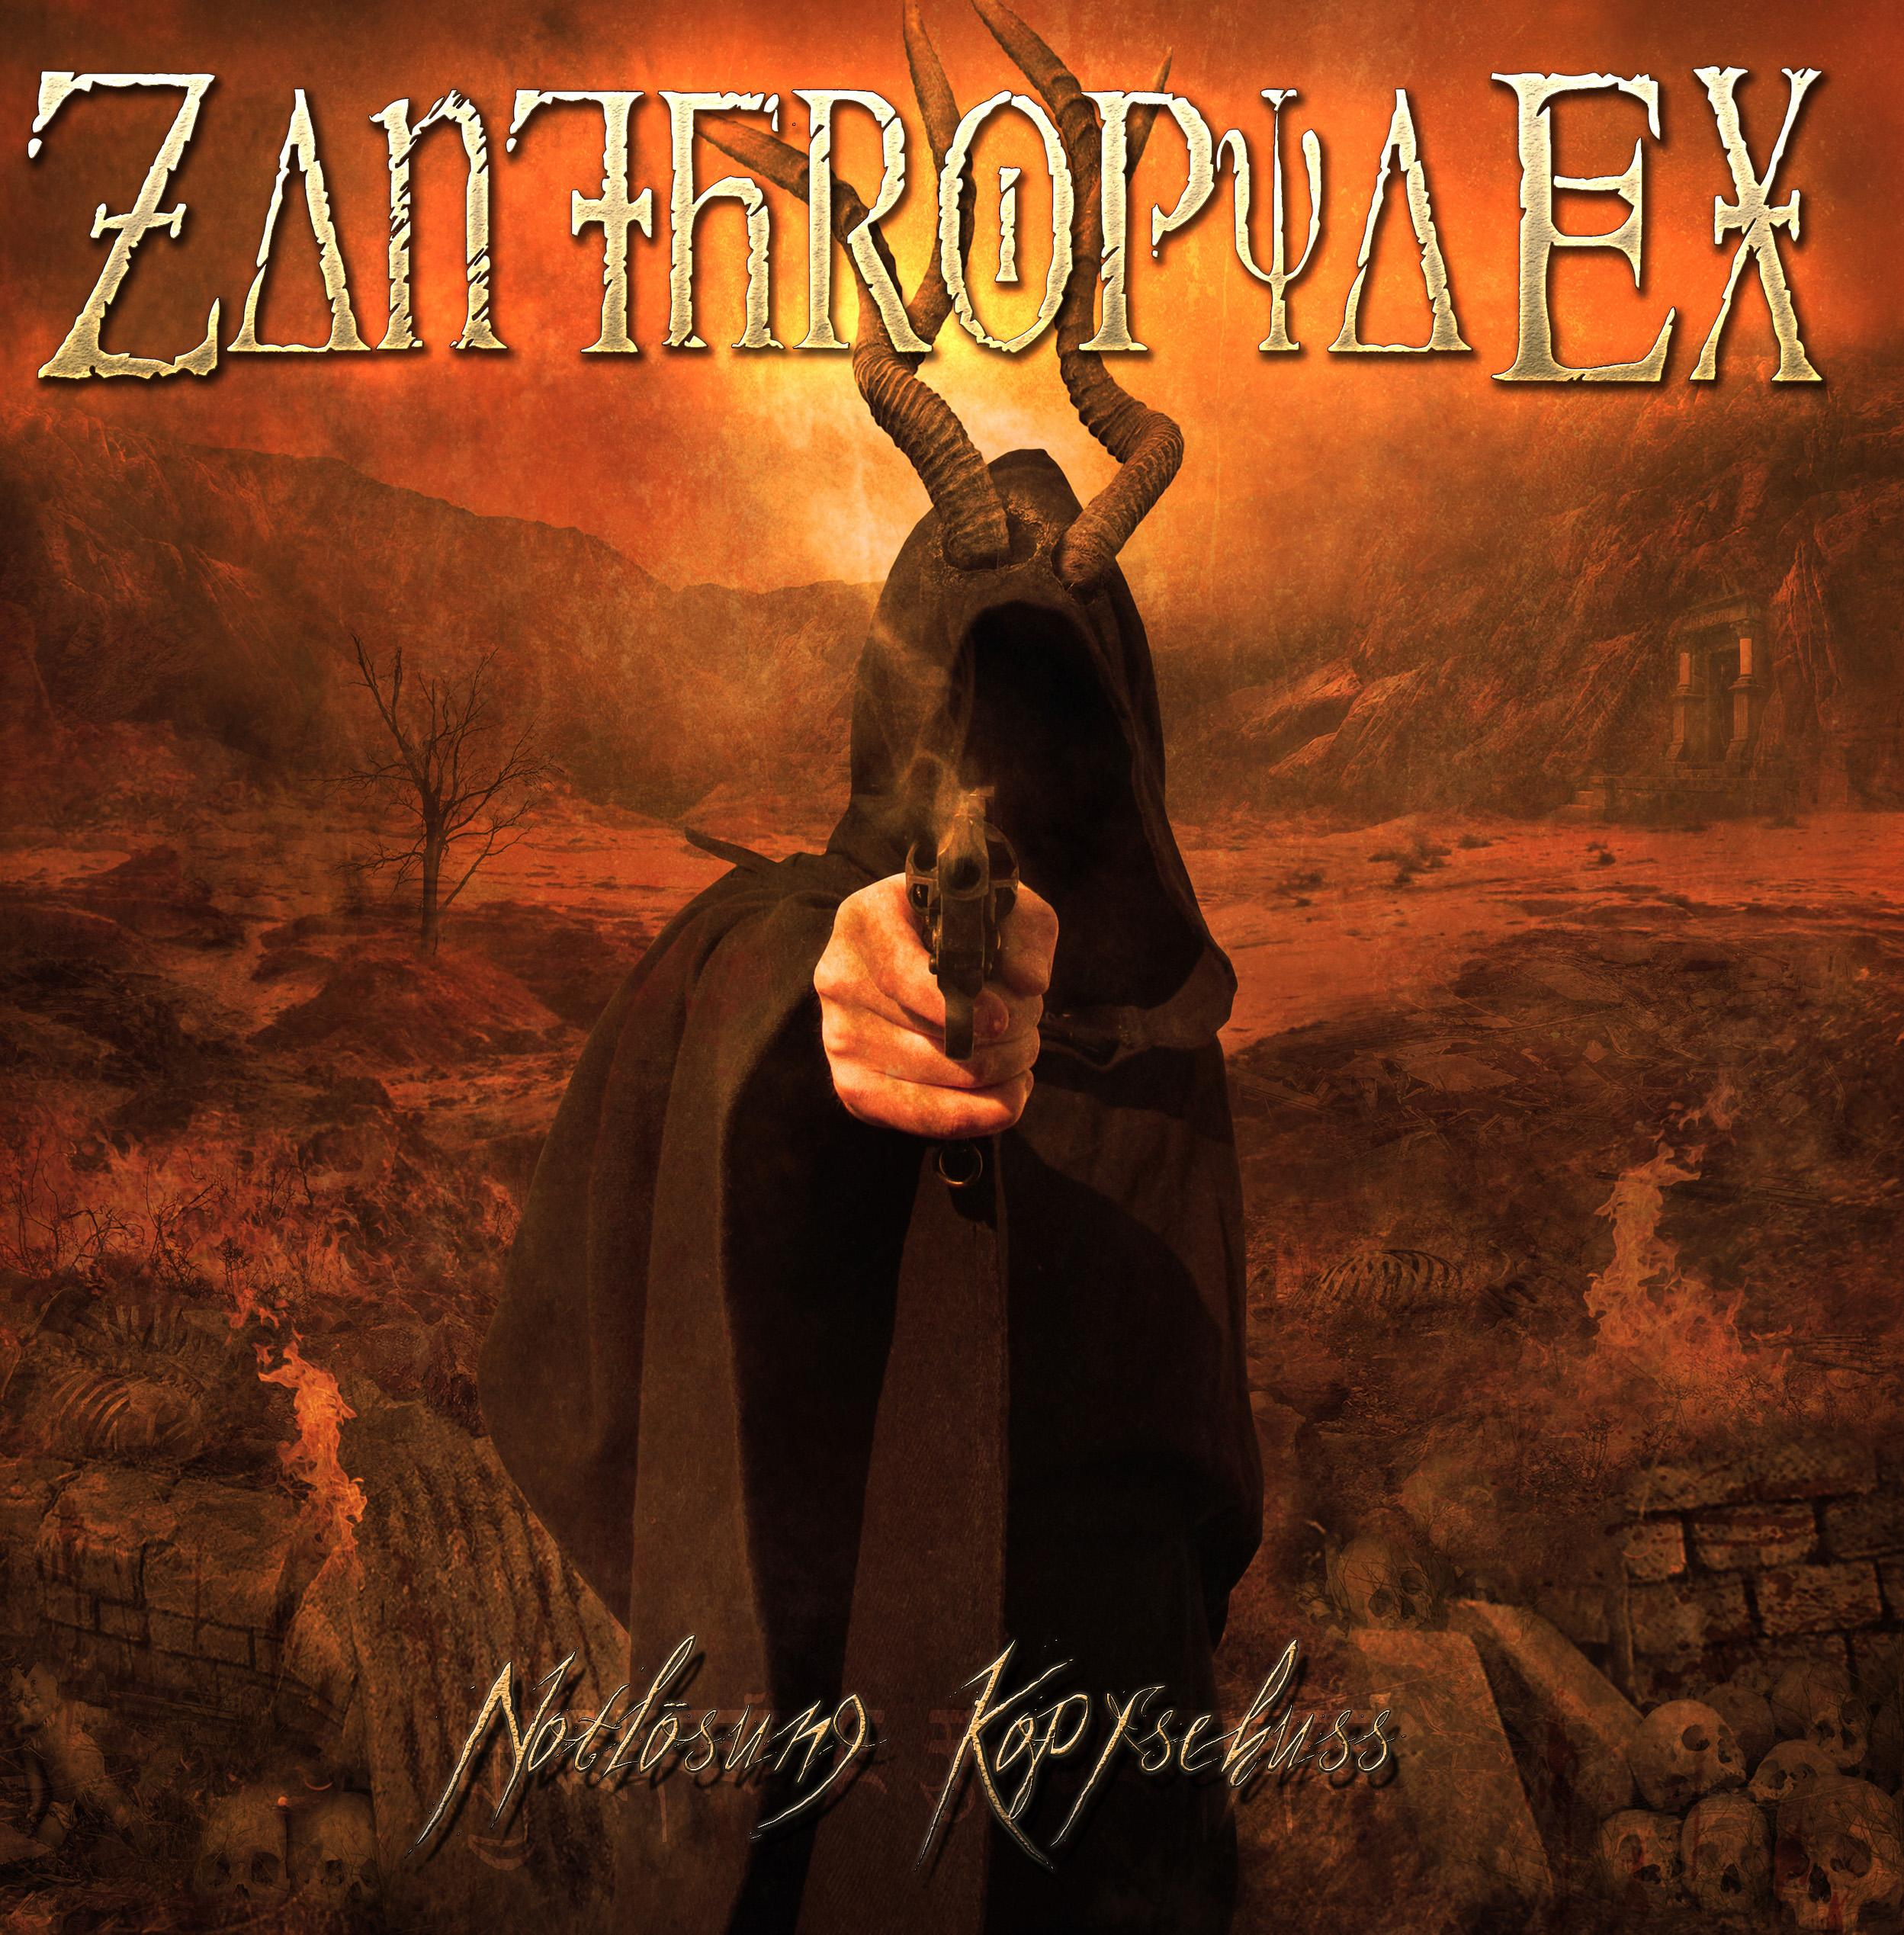 Zanthropya EX cover art